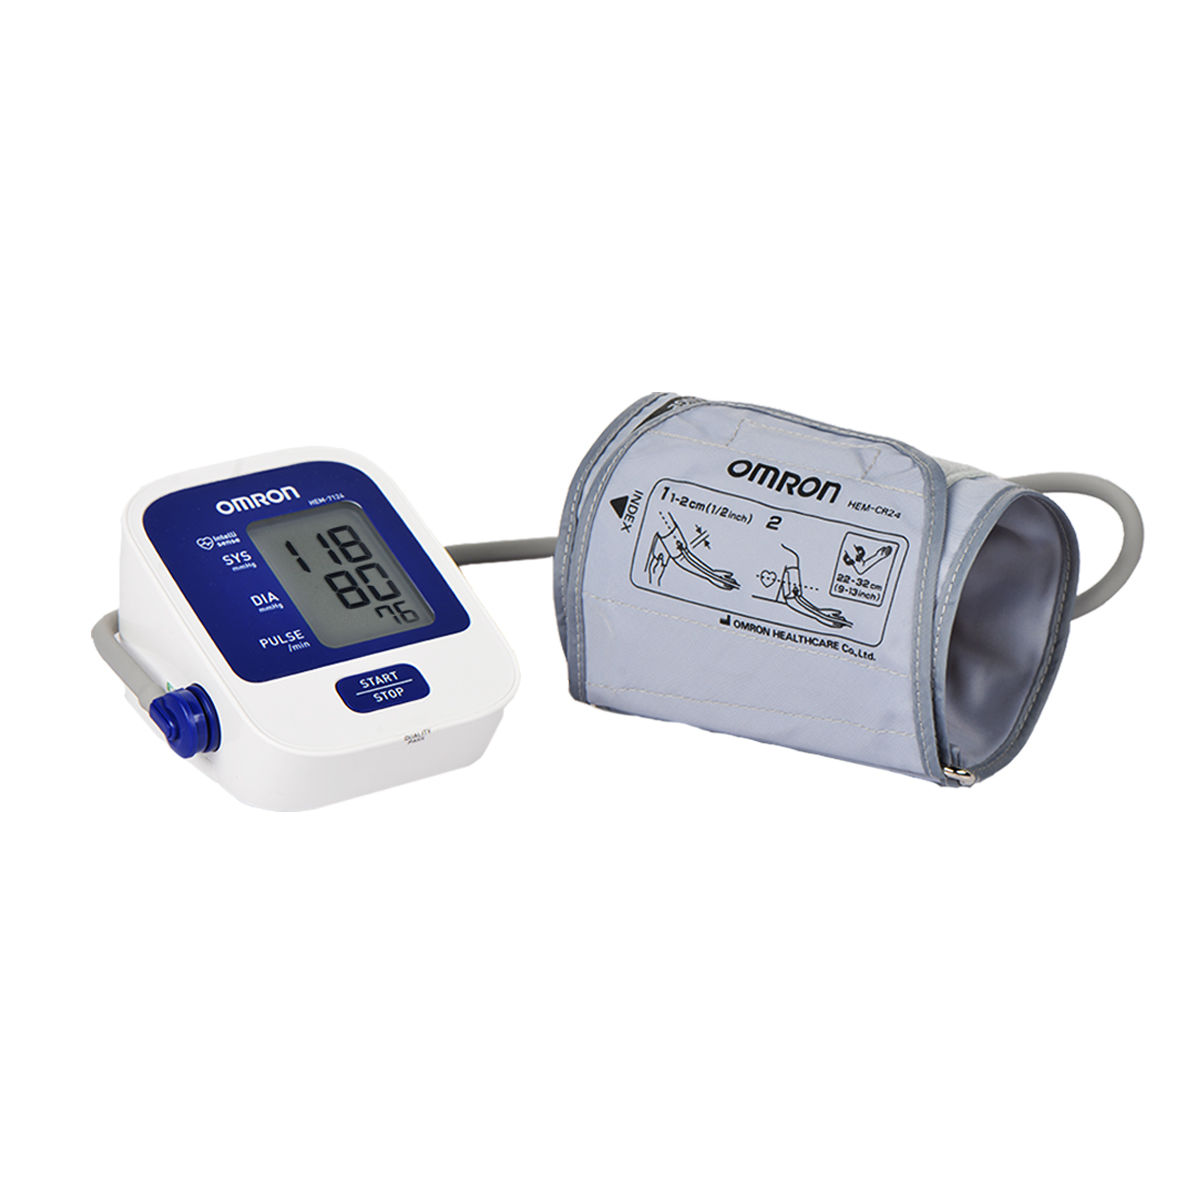 9548f83844f Buy Omron Automatic Blood Pressure Monitor Online at Best Price in India on  Naaptol.com